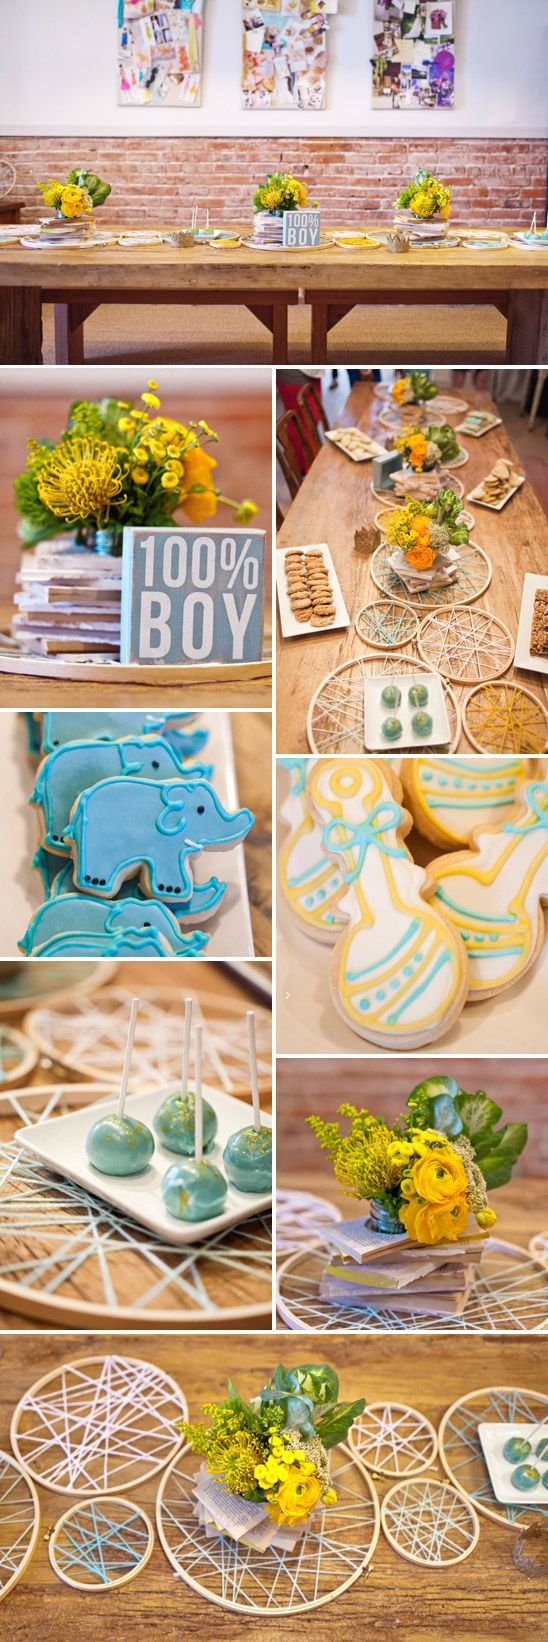 Library Themed Baby Shower http://ow.ly/aO2u1